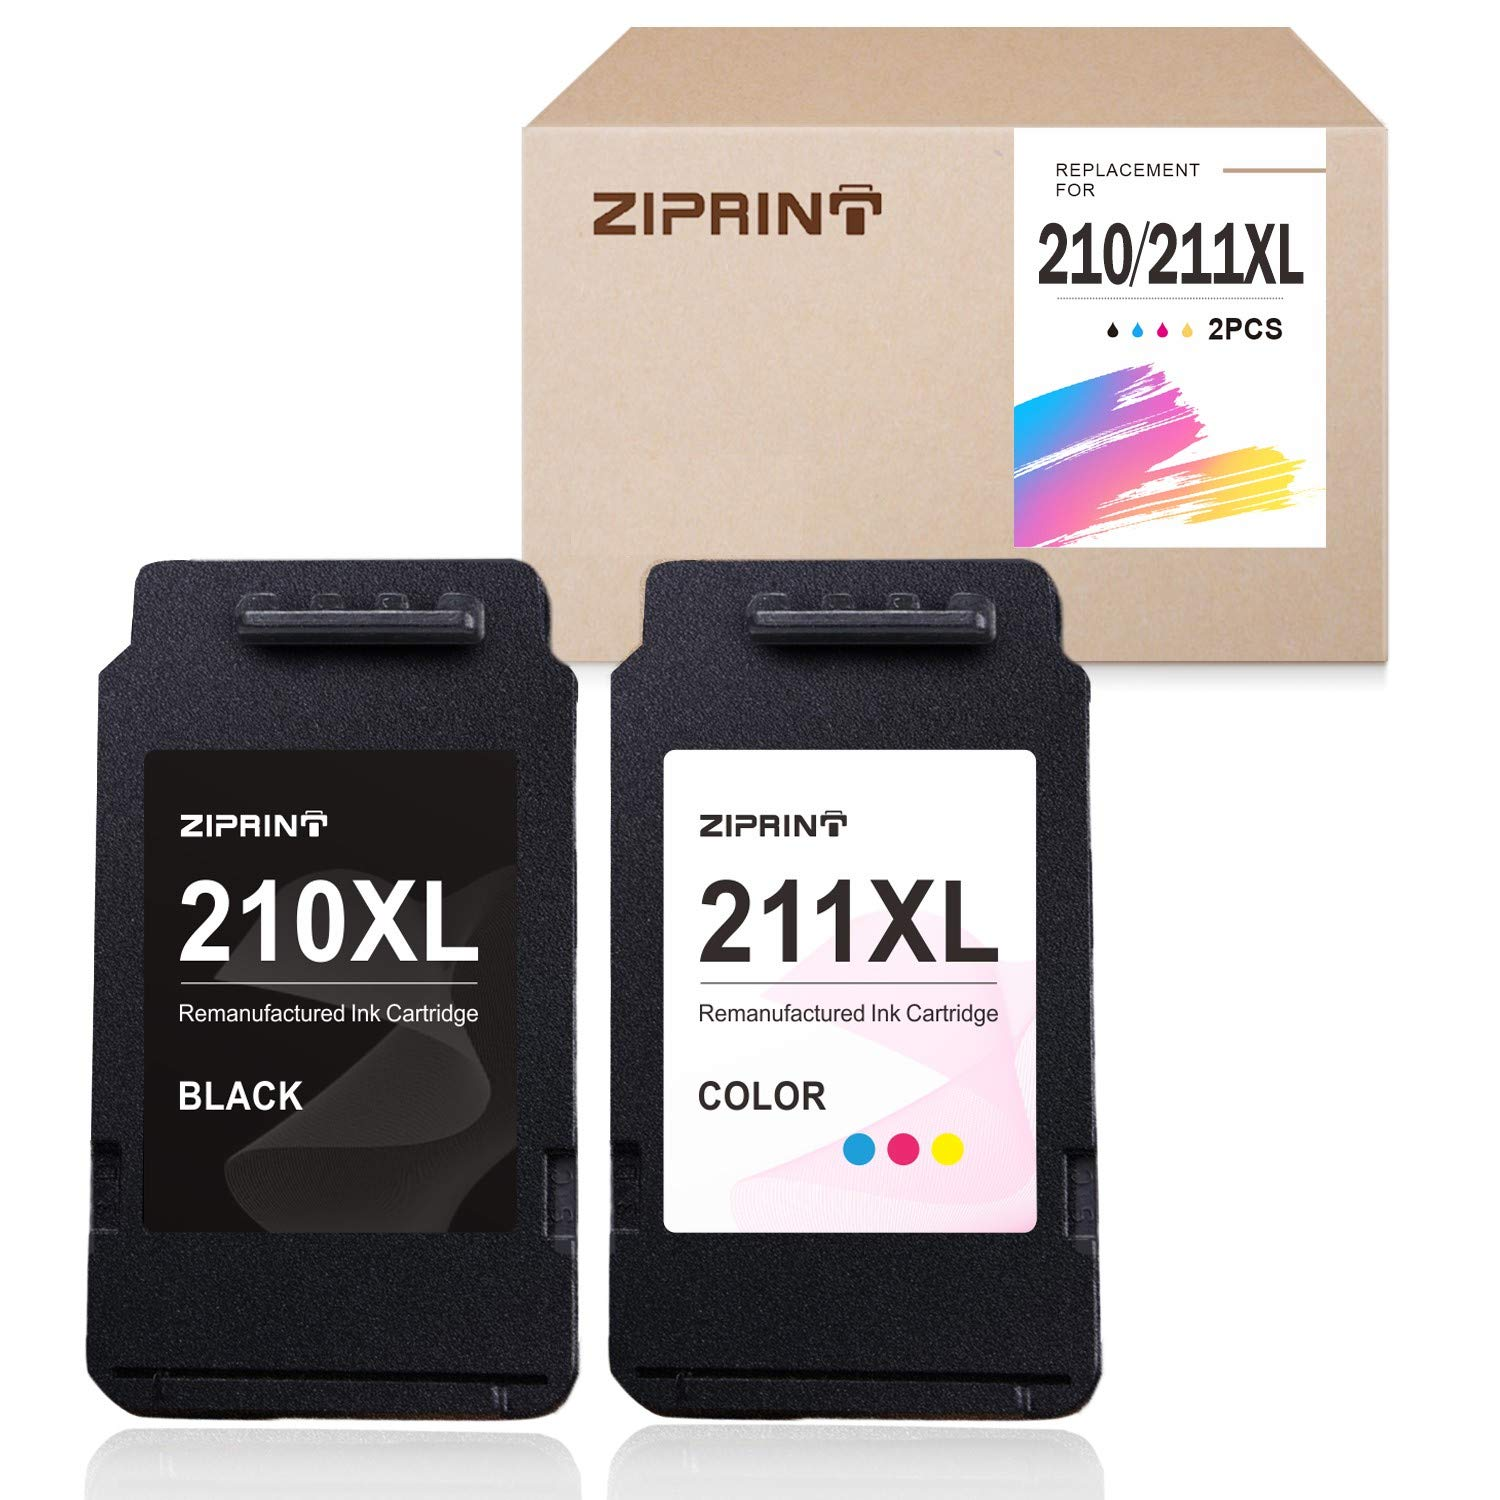 ZIPRINT Remanufactured Ink Cartridge Replacement for Canon 210XL 211XL PG-210 XL CL-211 XL for Canon PIXMA MX350 MP280 MX410 MP250 MX340 MP495 MX330 MP240 IP2702 IP2700 (1 Black, 1 Tri-Color)